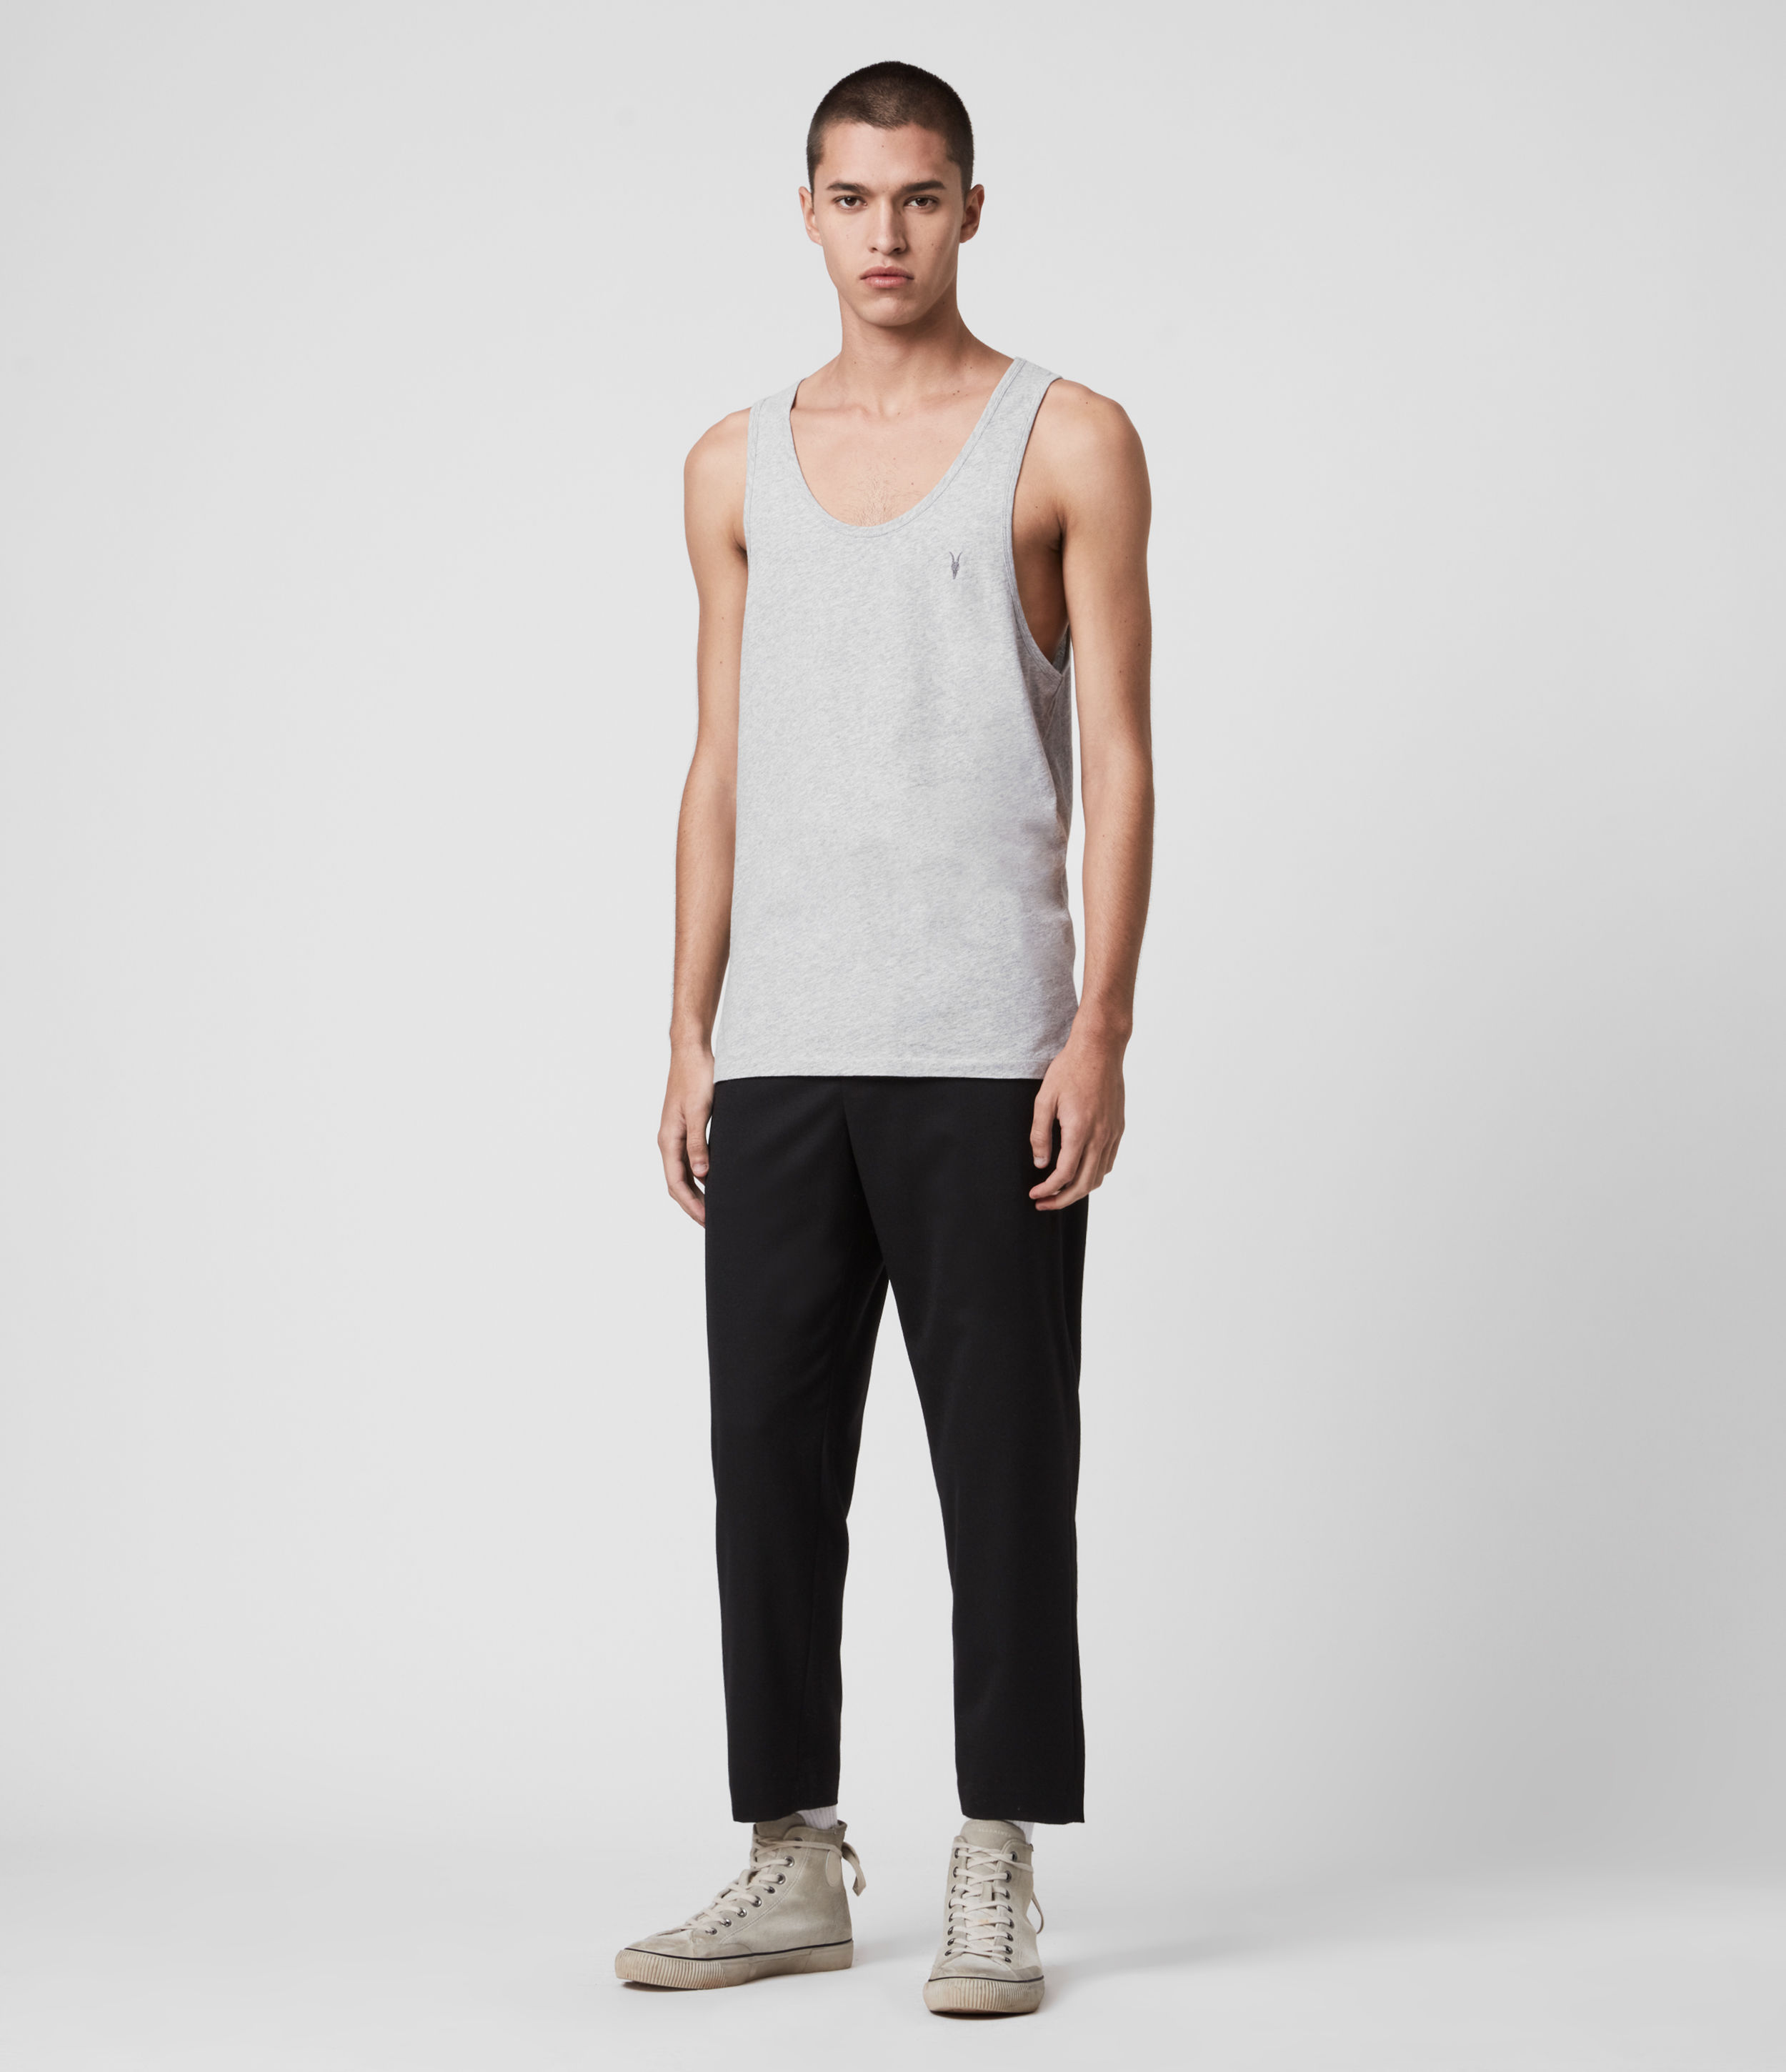 AllSaints Men's Cotton Lightweight Tonic Vest, Grey, Size: S